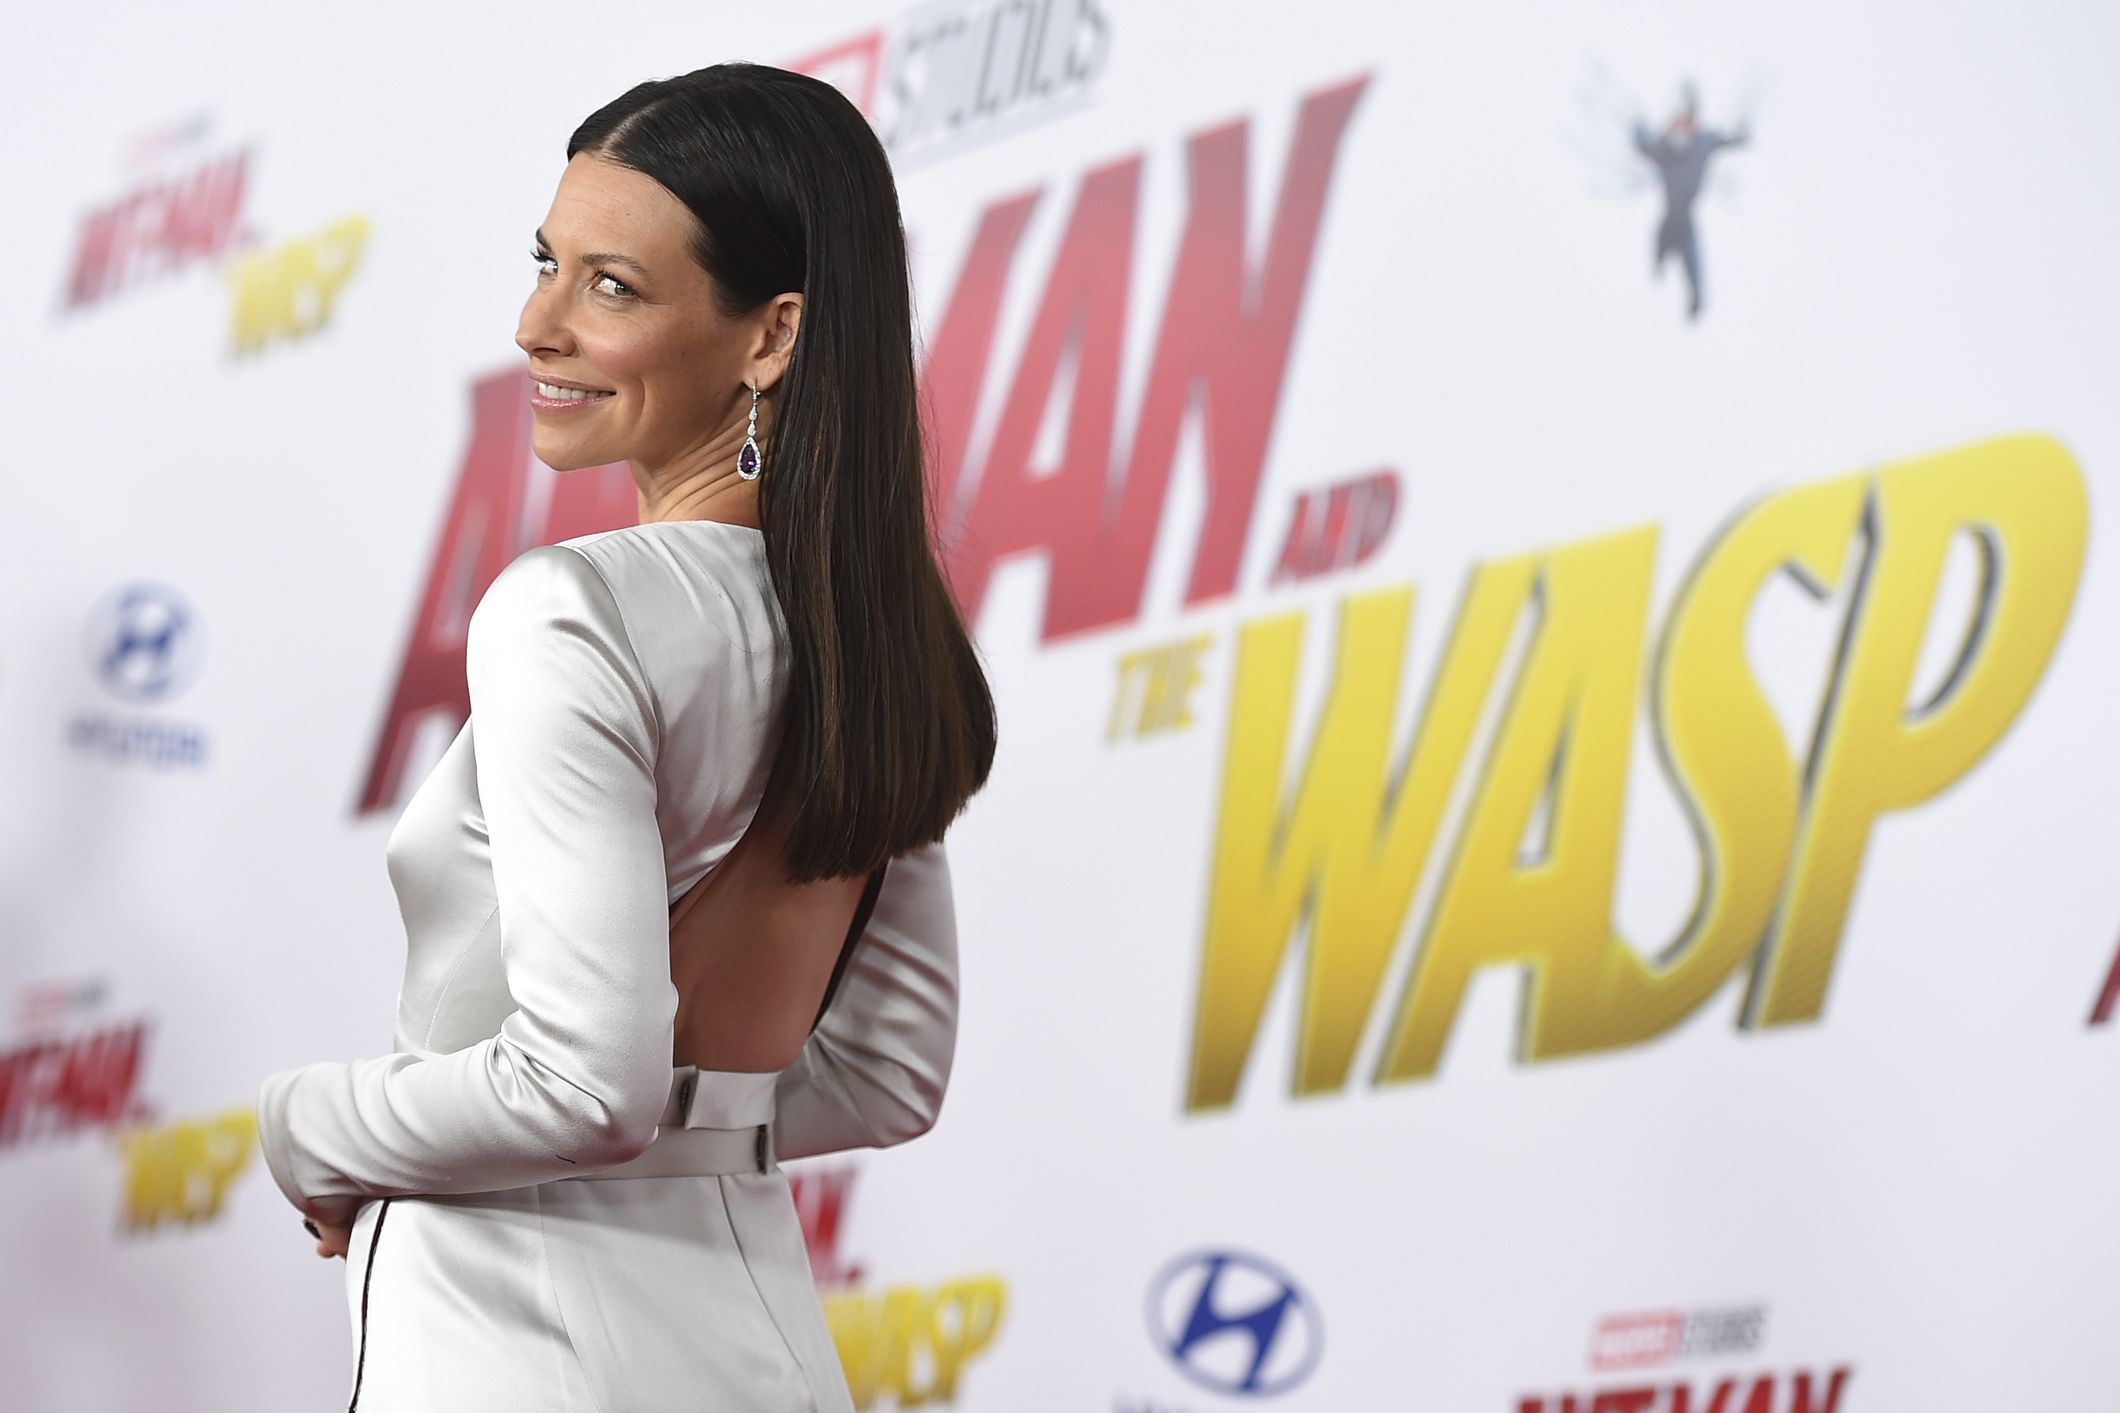 Ant-Man and Wasp star Evangeline Lilly says she wont do